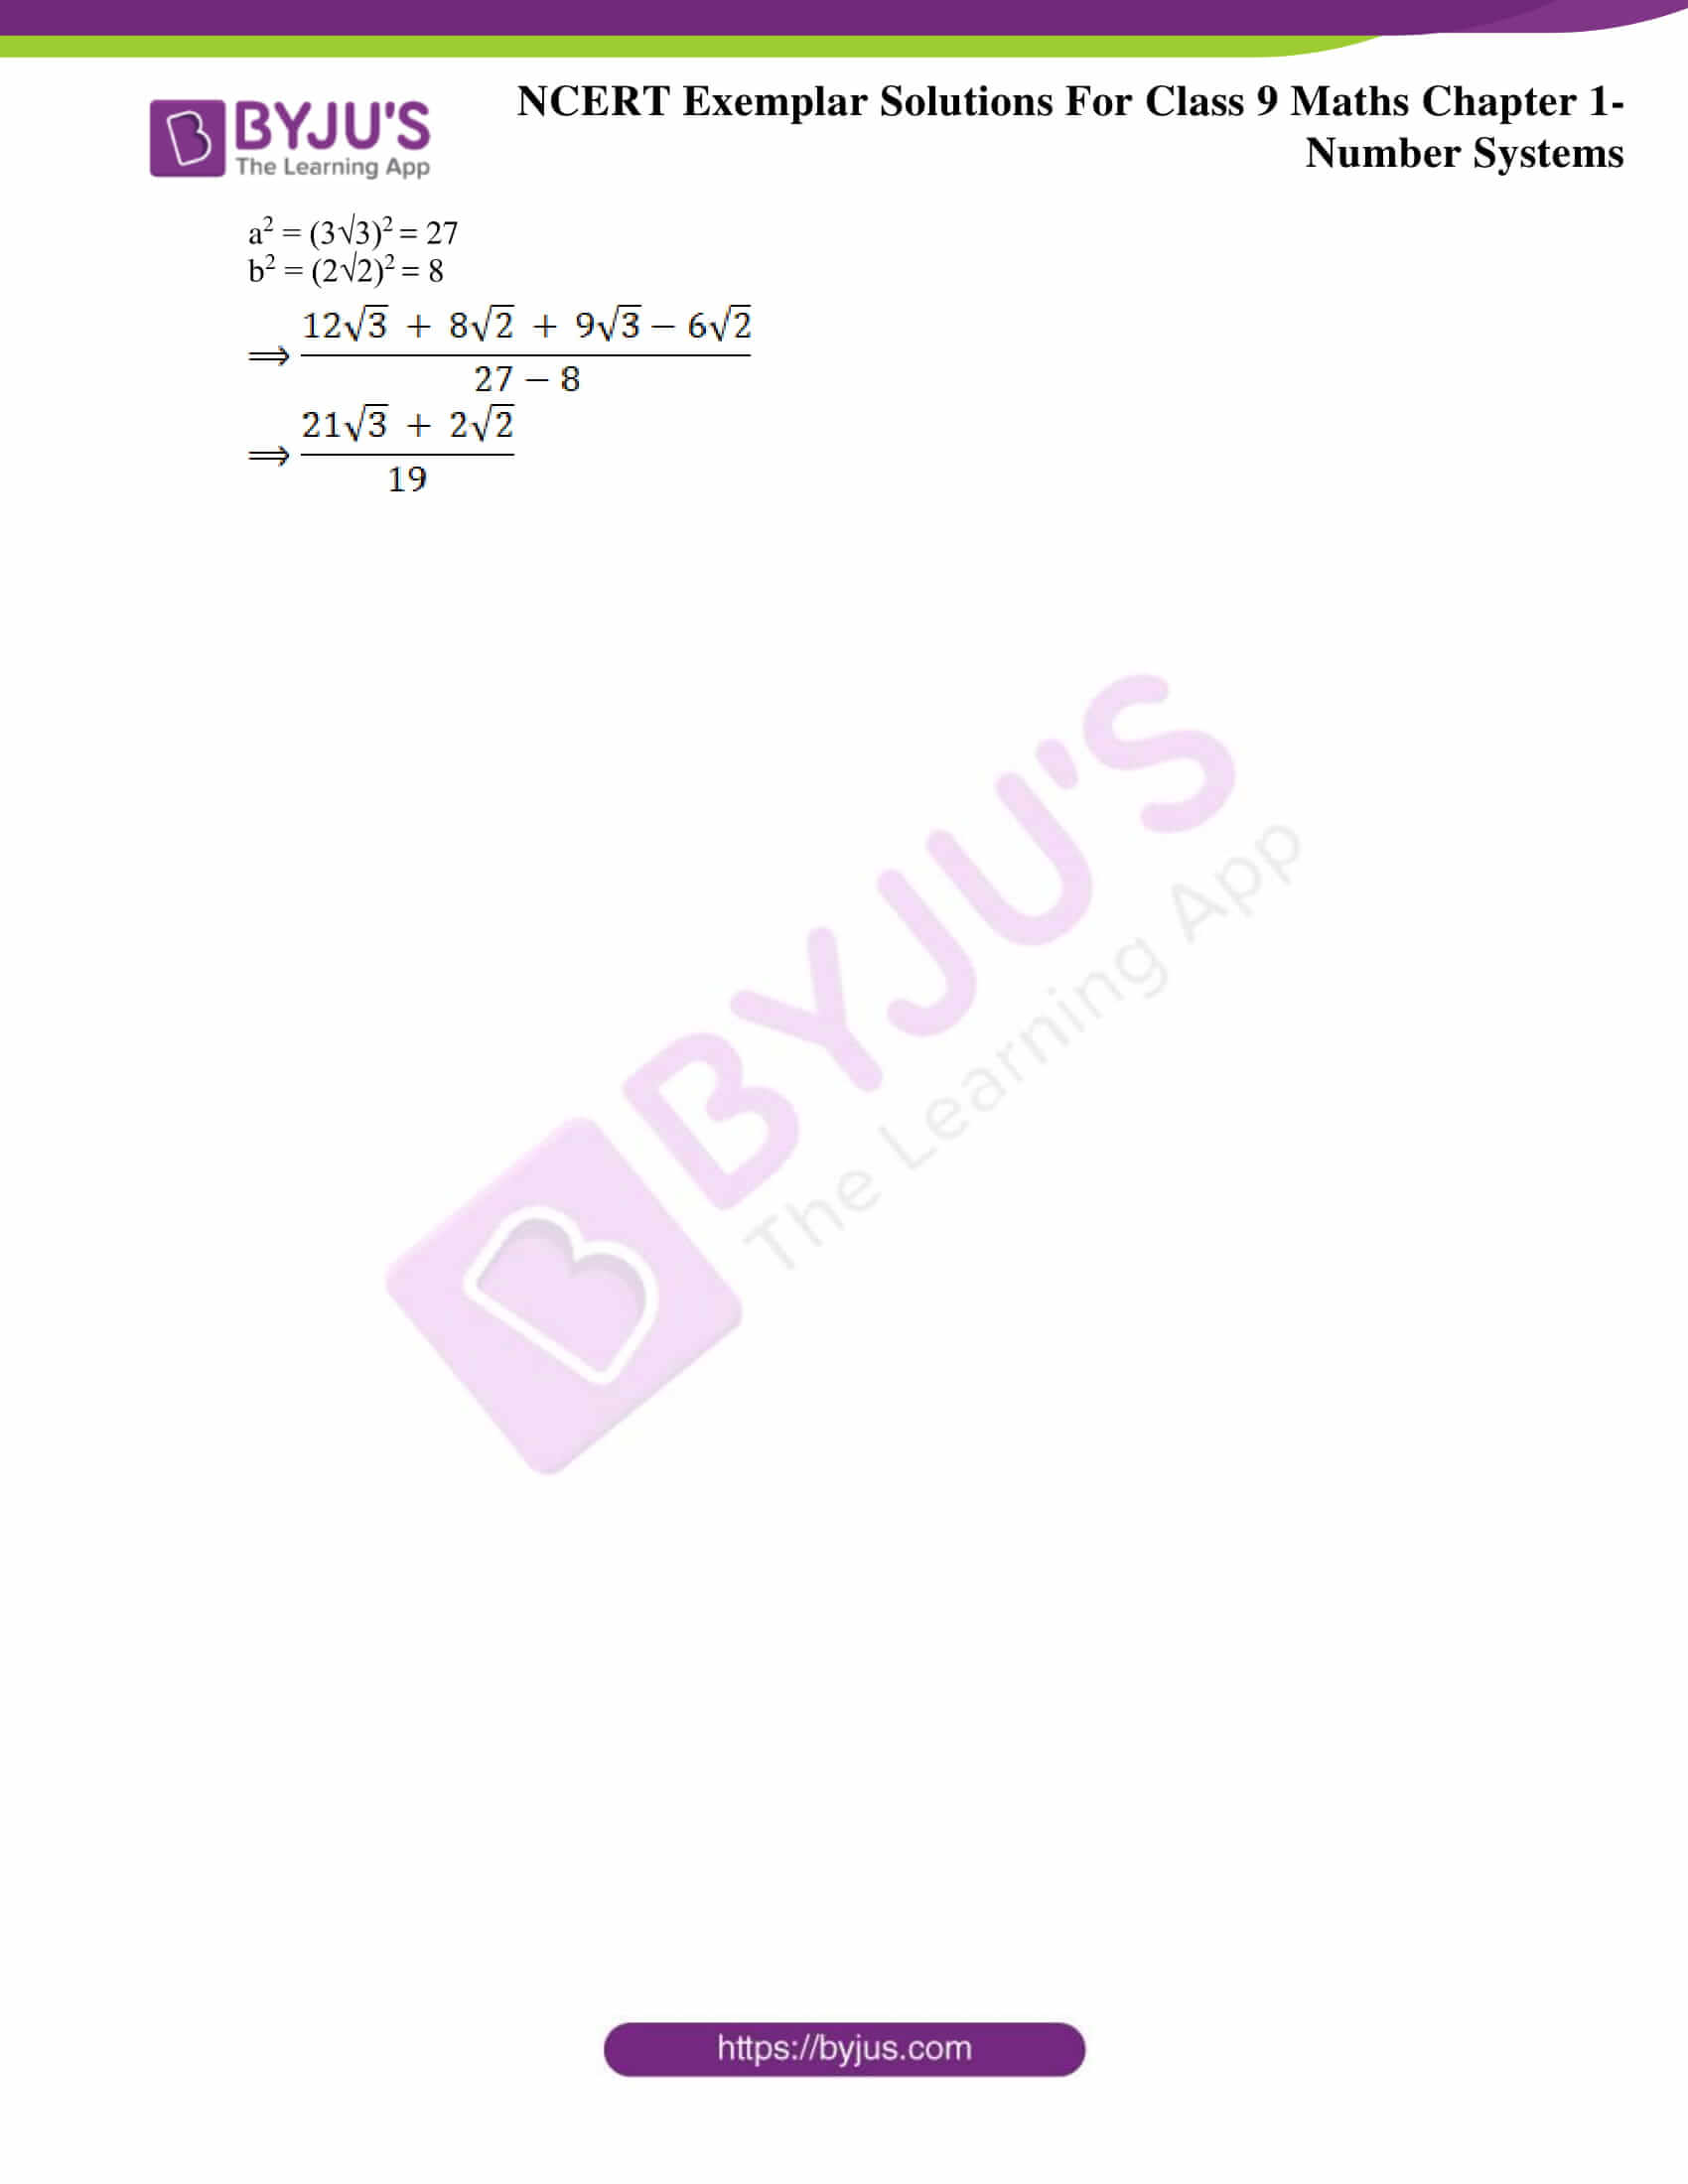 NCERT Exemplar Solutions for Class 9 Maths Chapter 1 18